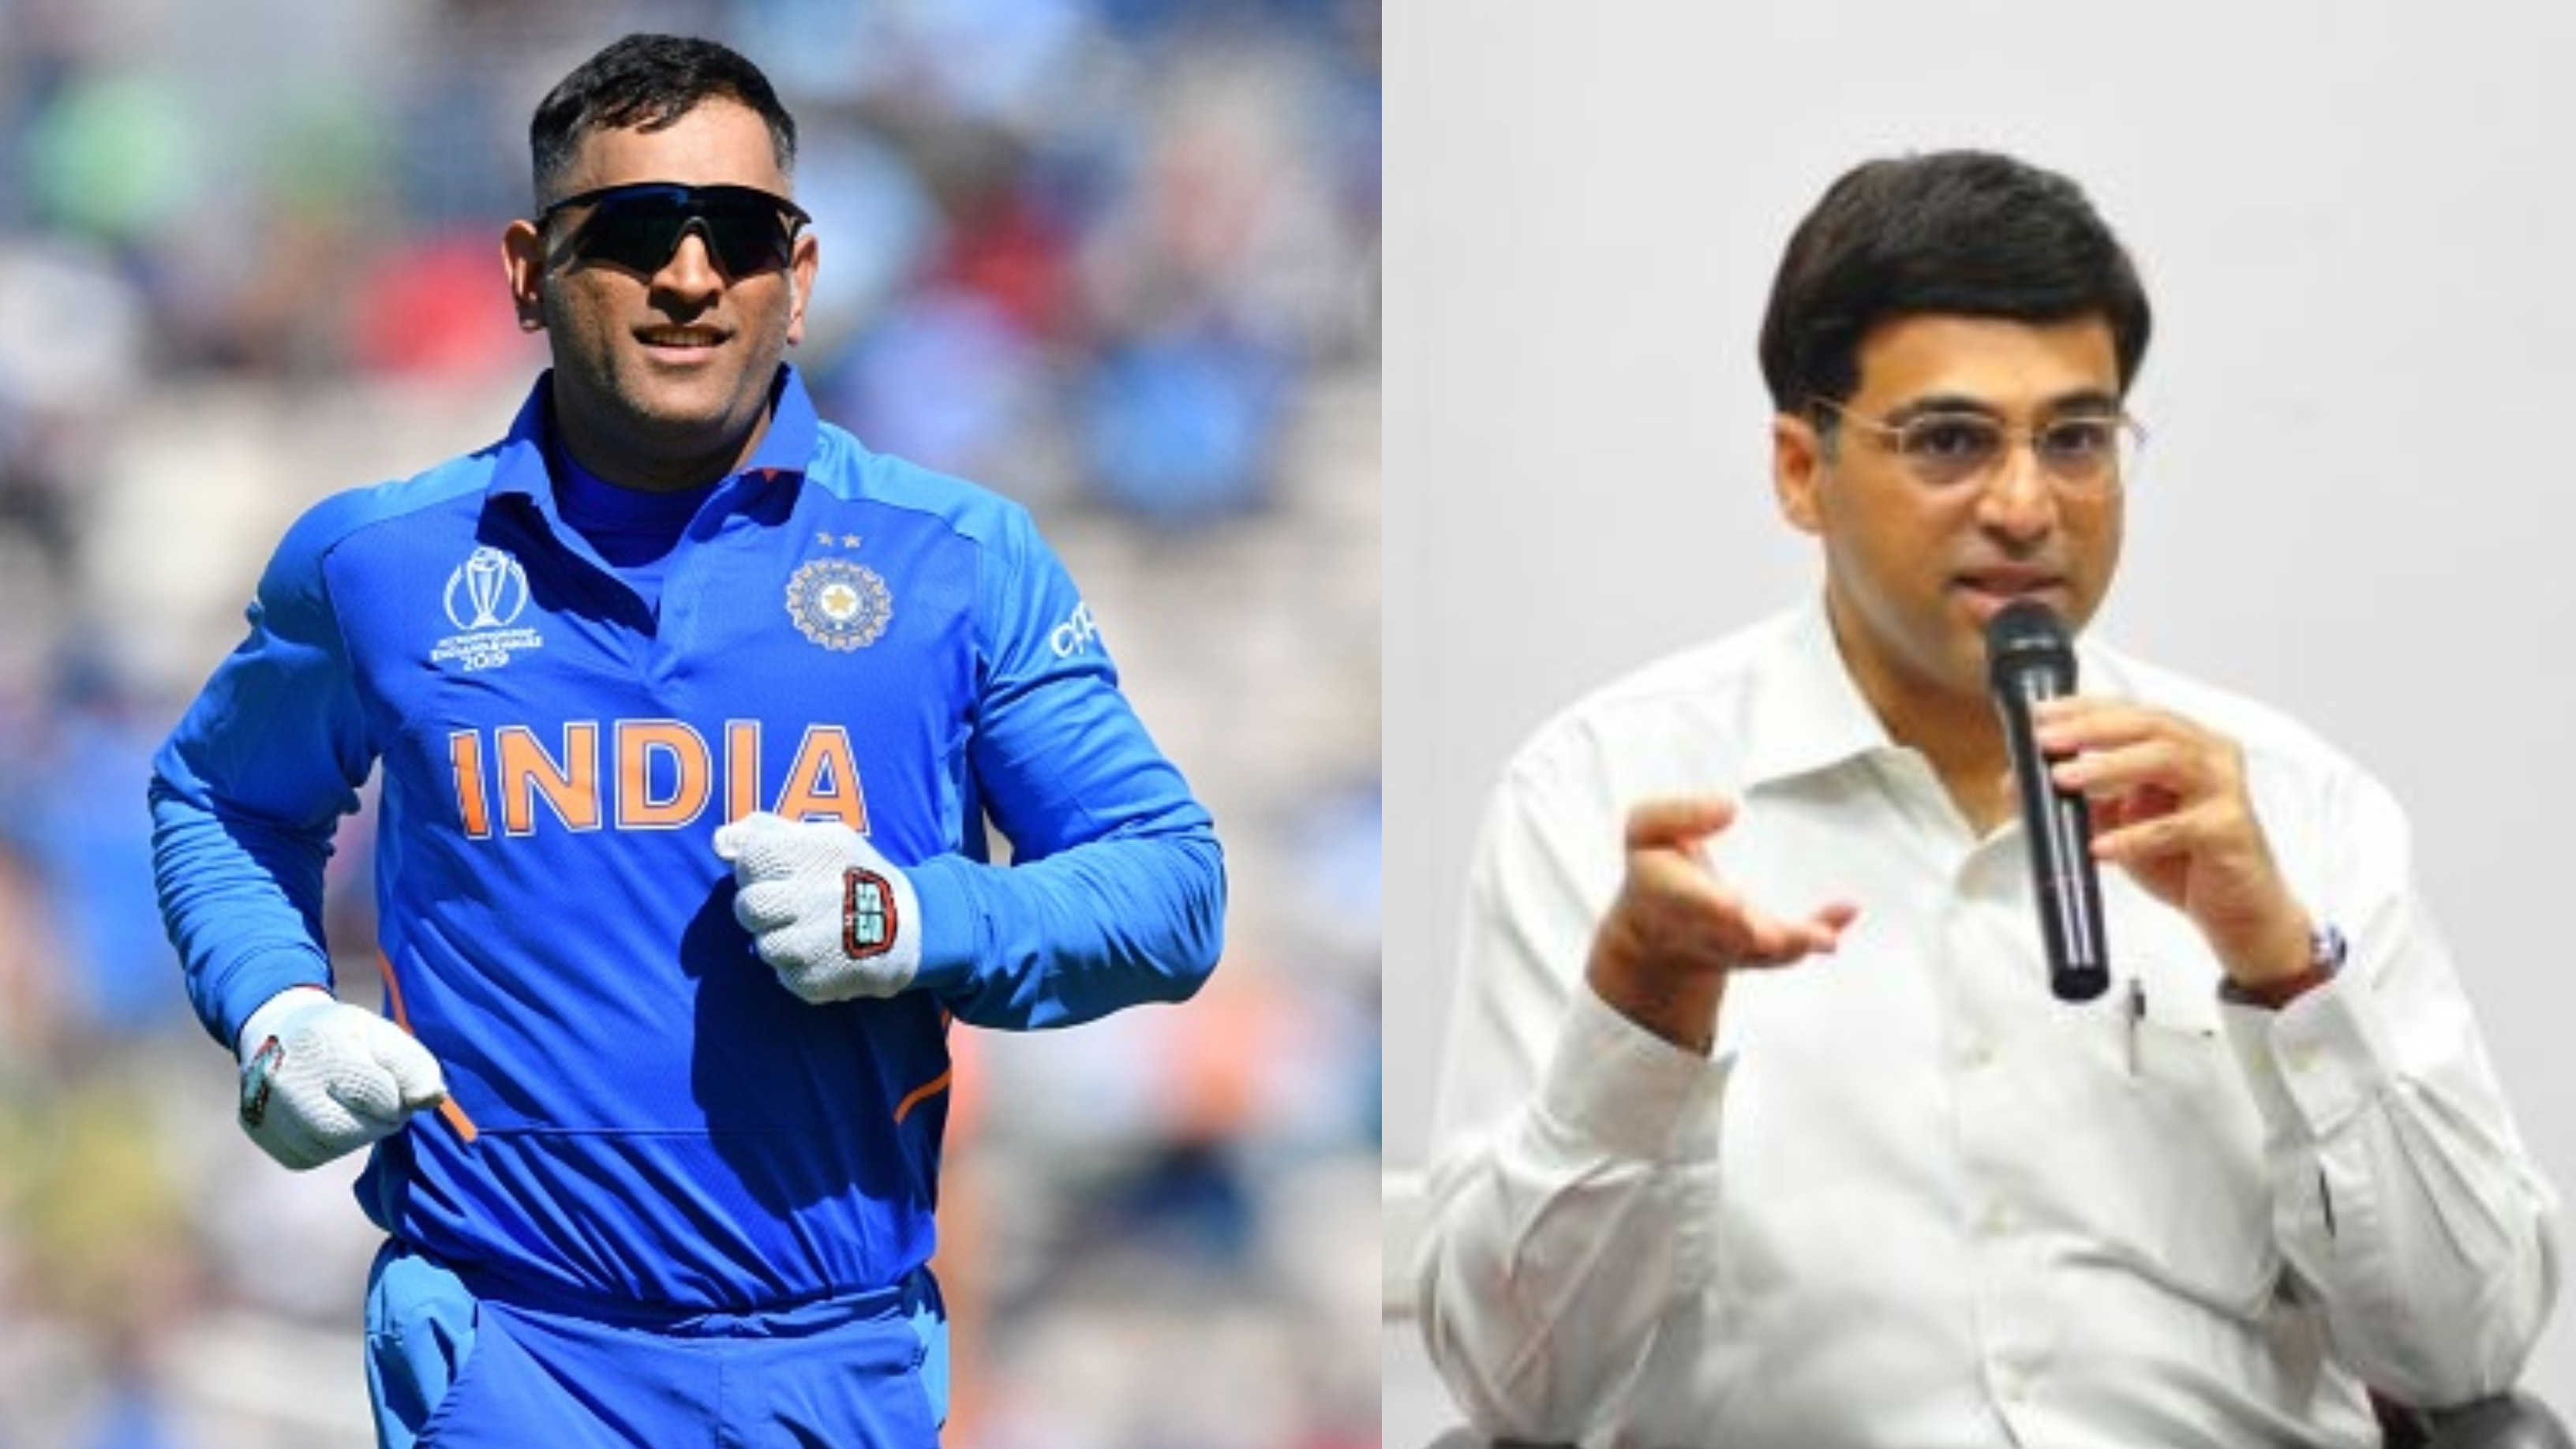 Viswanathan Anand feels there's nothing left for MS Dhoni to achieve